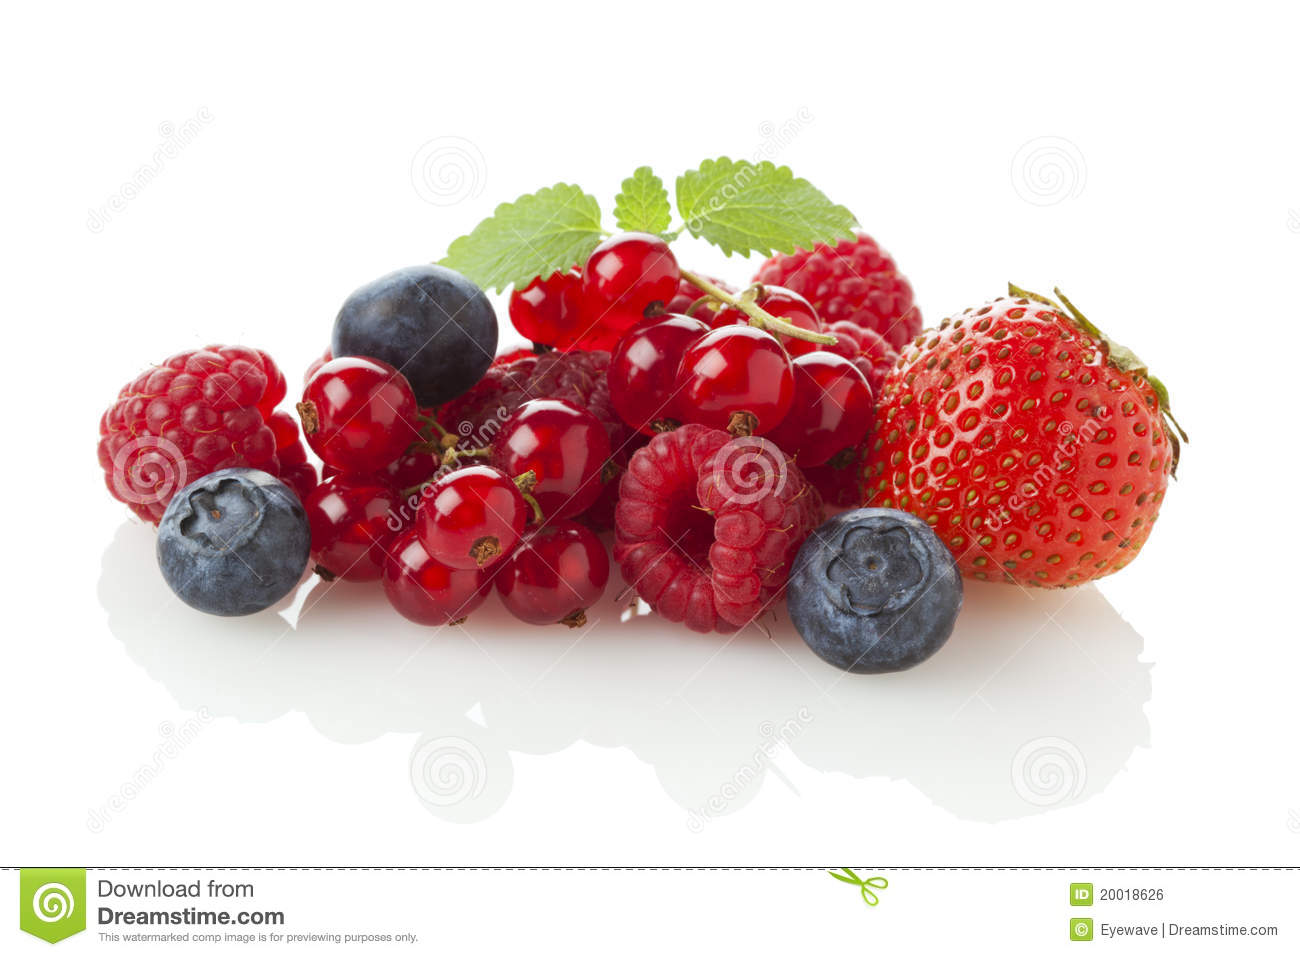 Variety of berry fruit